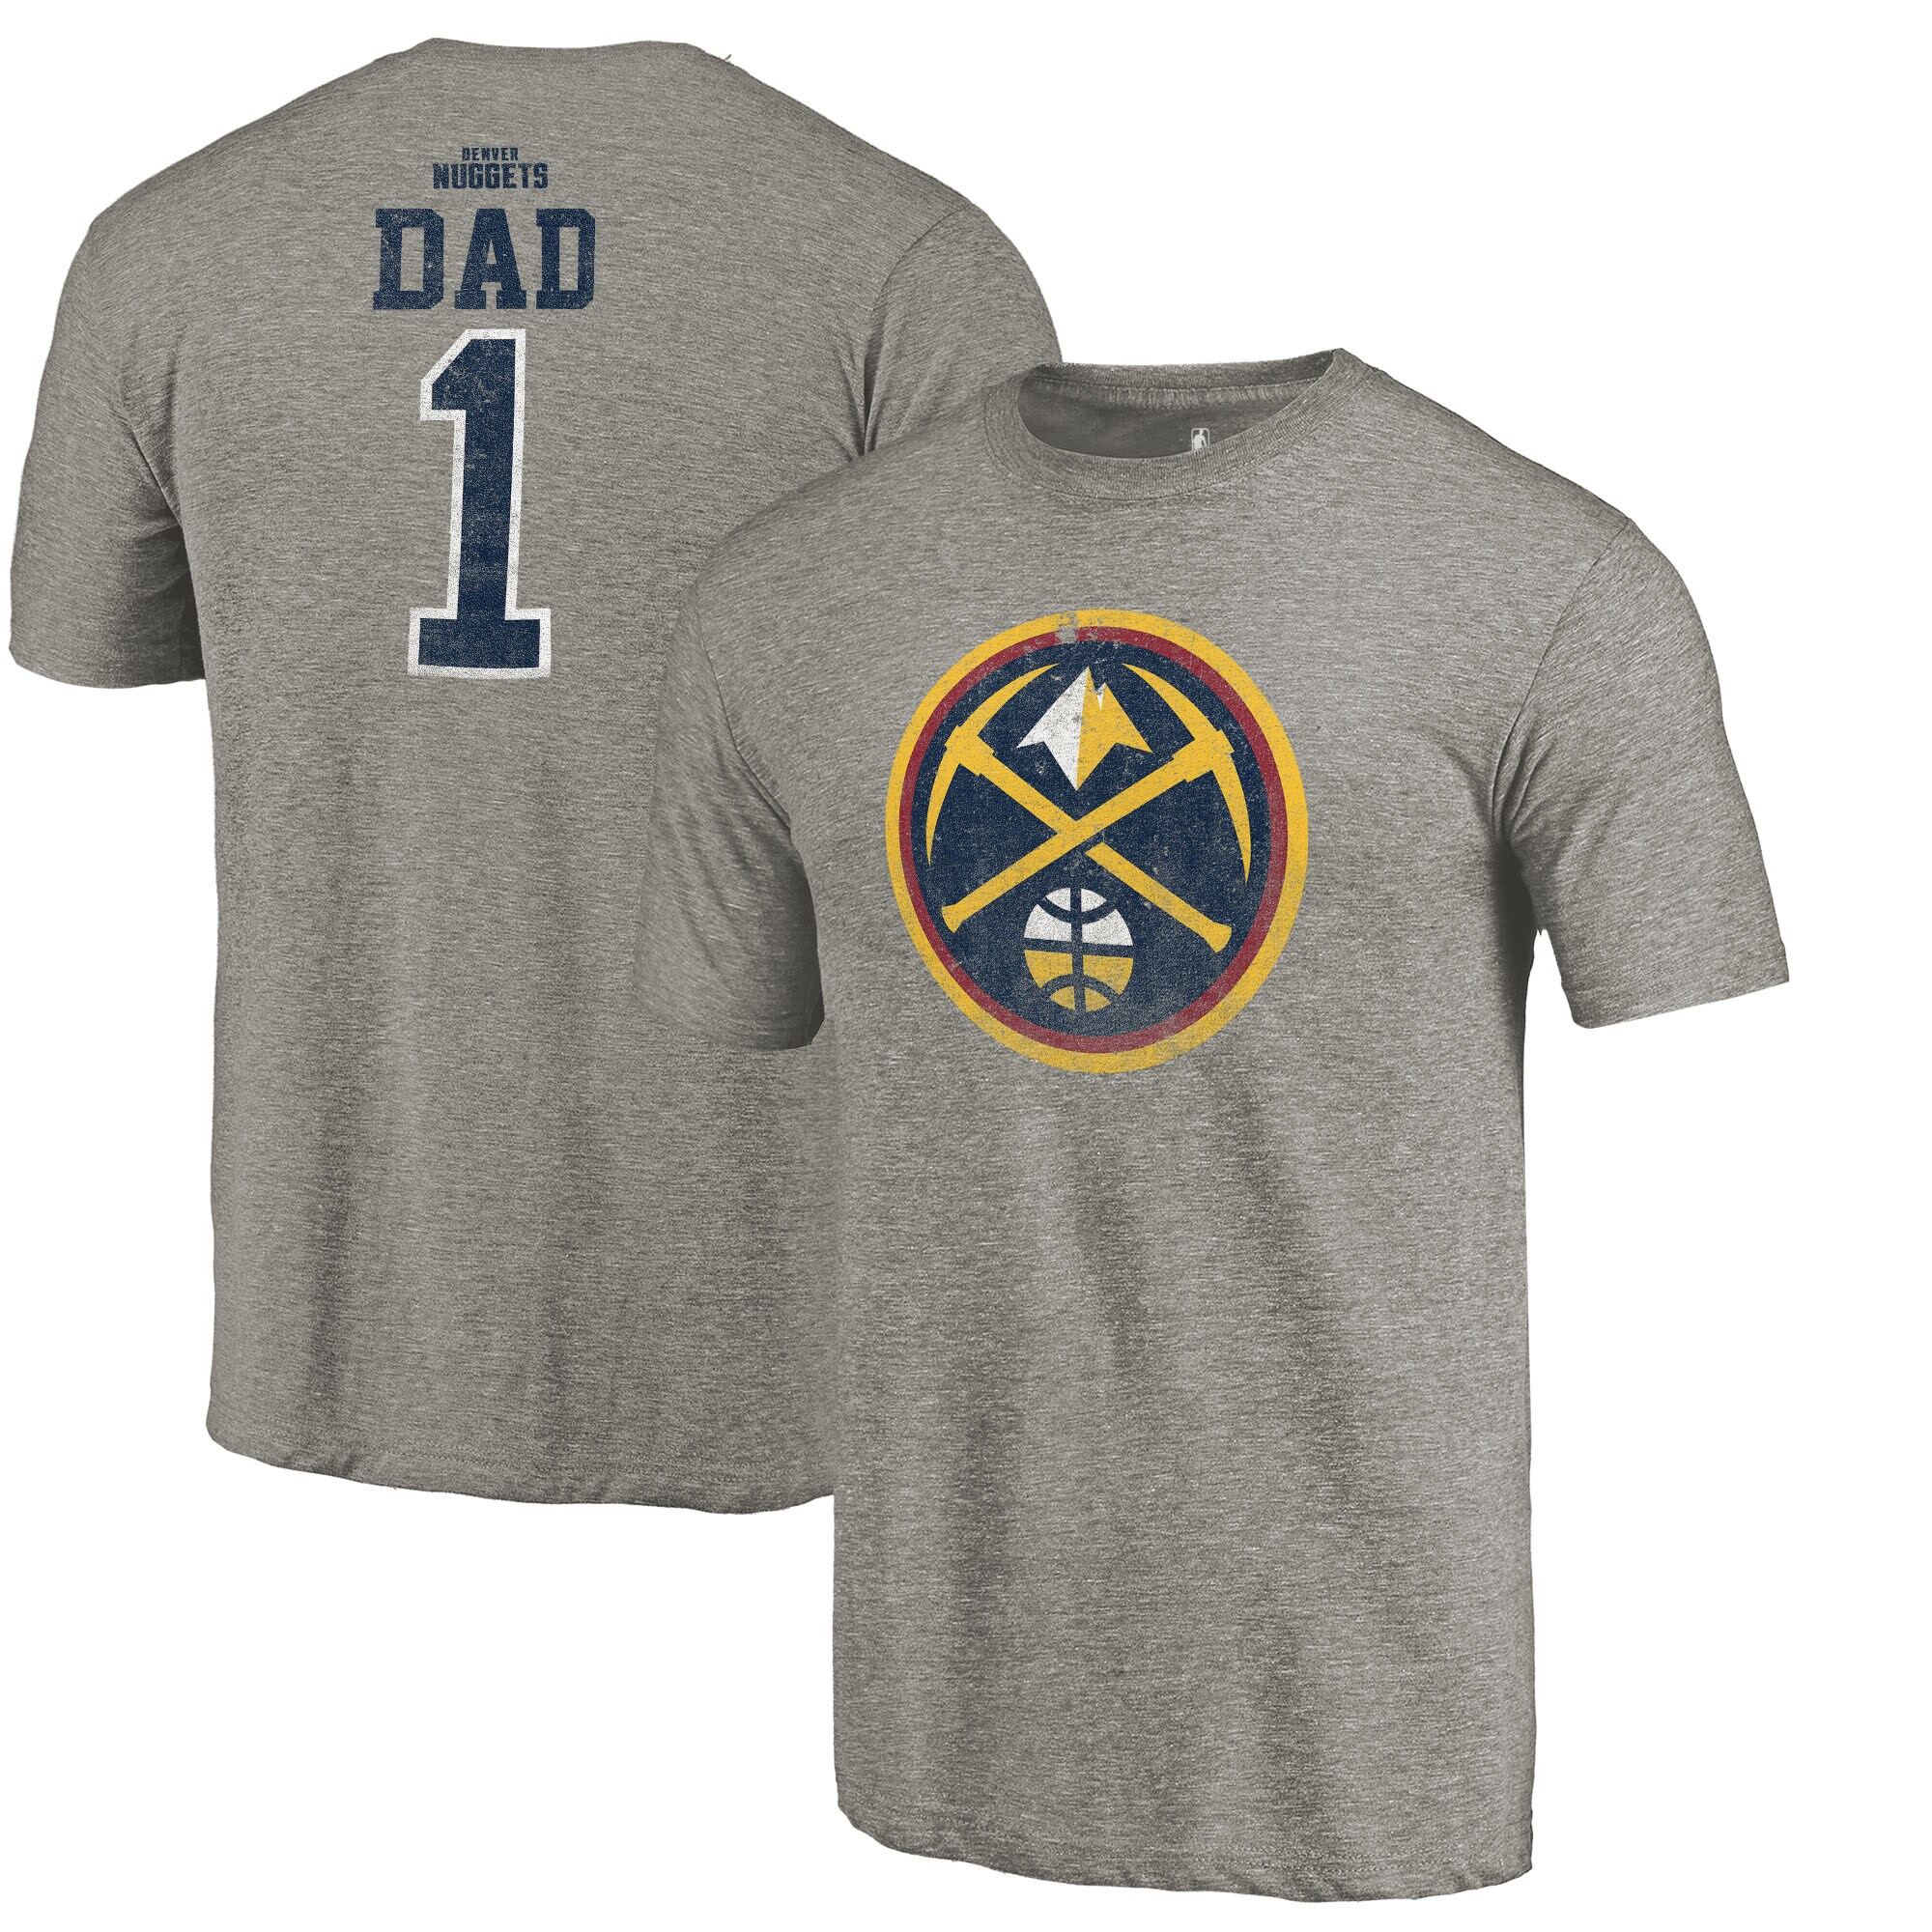 Denver Nuggets Fanatics Branded Greatest Dad Tri-Blend T-Shirt - Gray